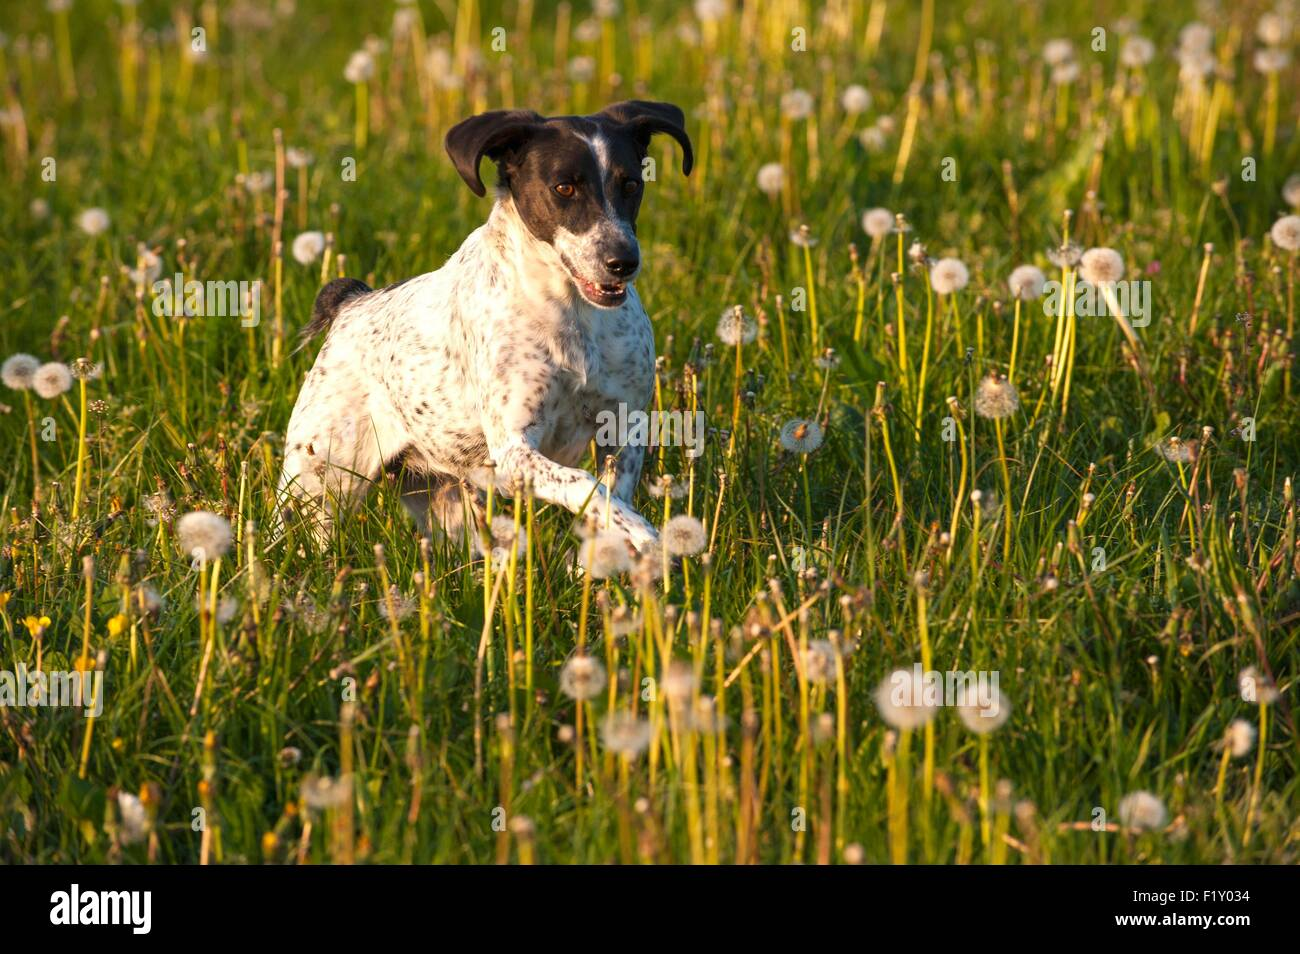 France, Loire, Dog (Canis lupus familiaris), hunting dog type Braque, running in a field - Stock Image